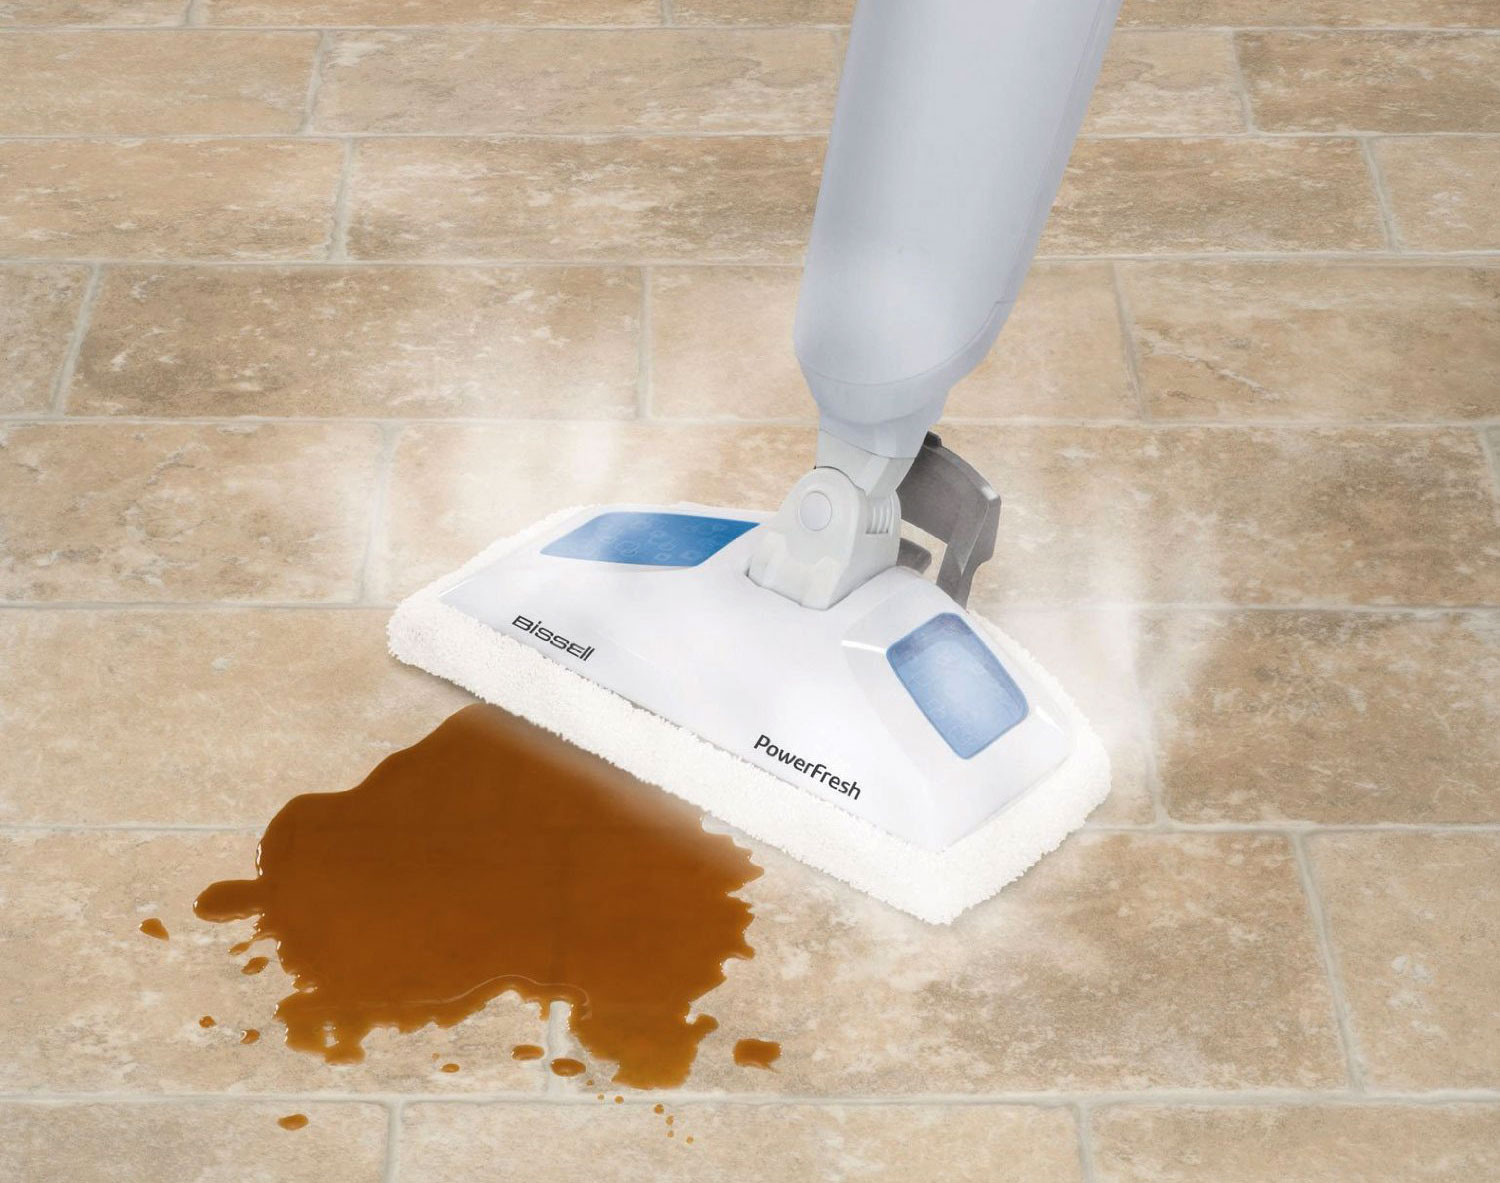 10 Great Shark Hardwood Floor Steam Cleaner Reviews 2021 free download shark hardwood floor steam cleaner reviews of the 4 best steam mops with a3e8dac8 fd9f 4940 ad99 8094ad1403c3 811cn2sa0wl sl1500